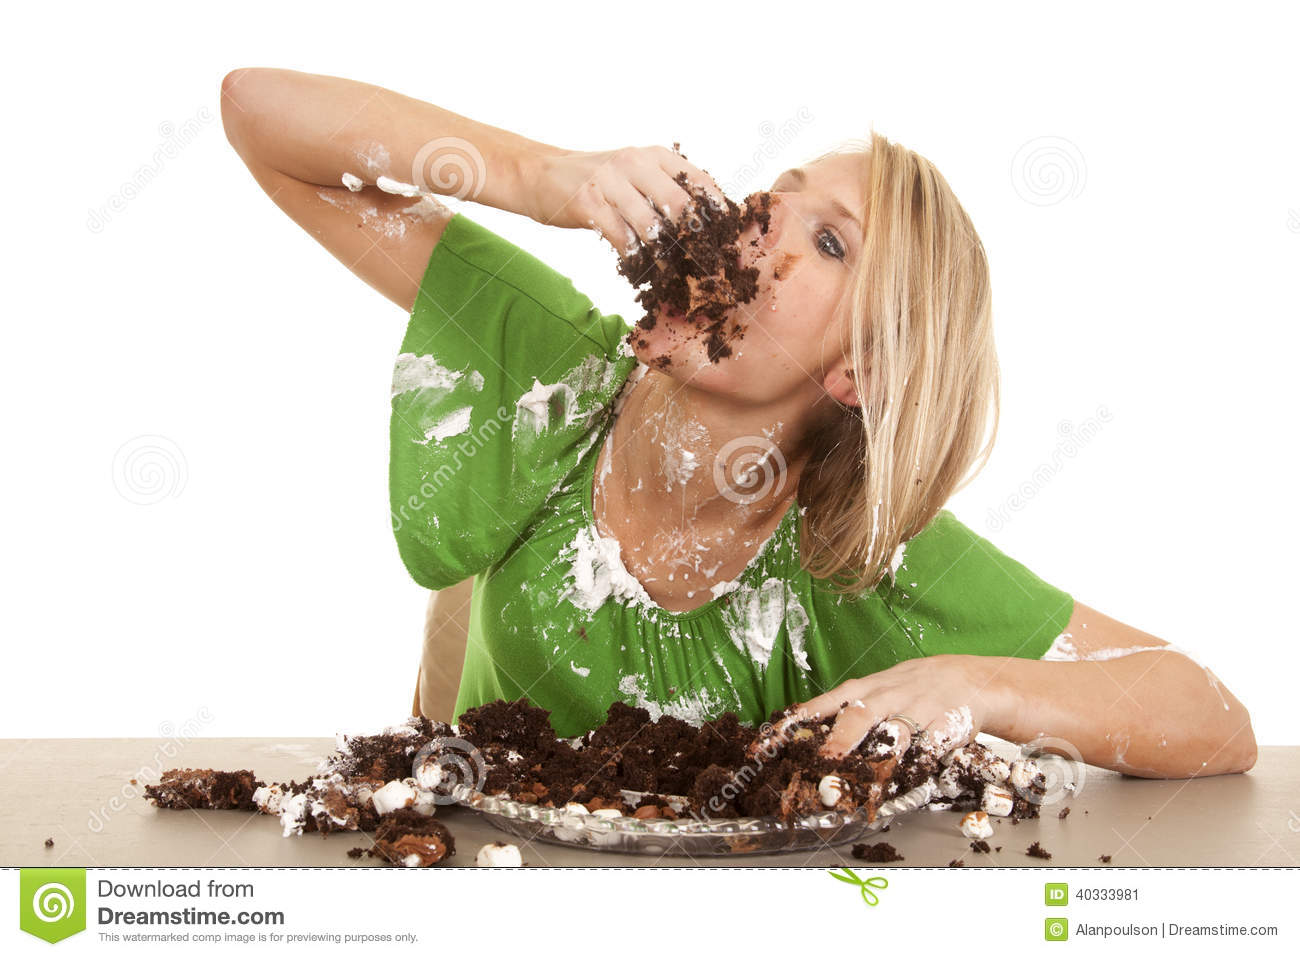 Stuffing Face With Cake